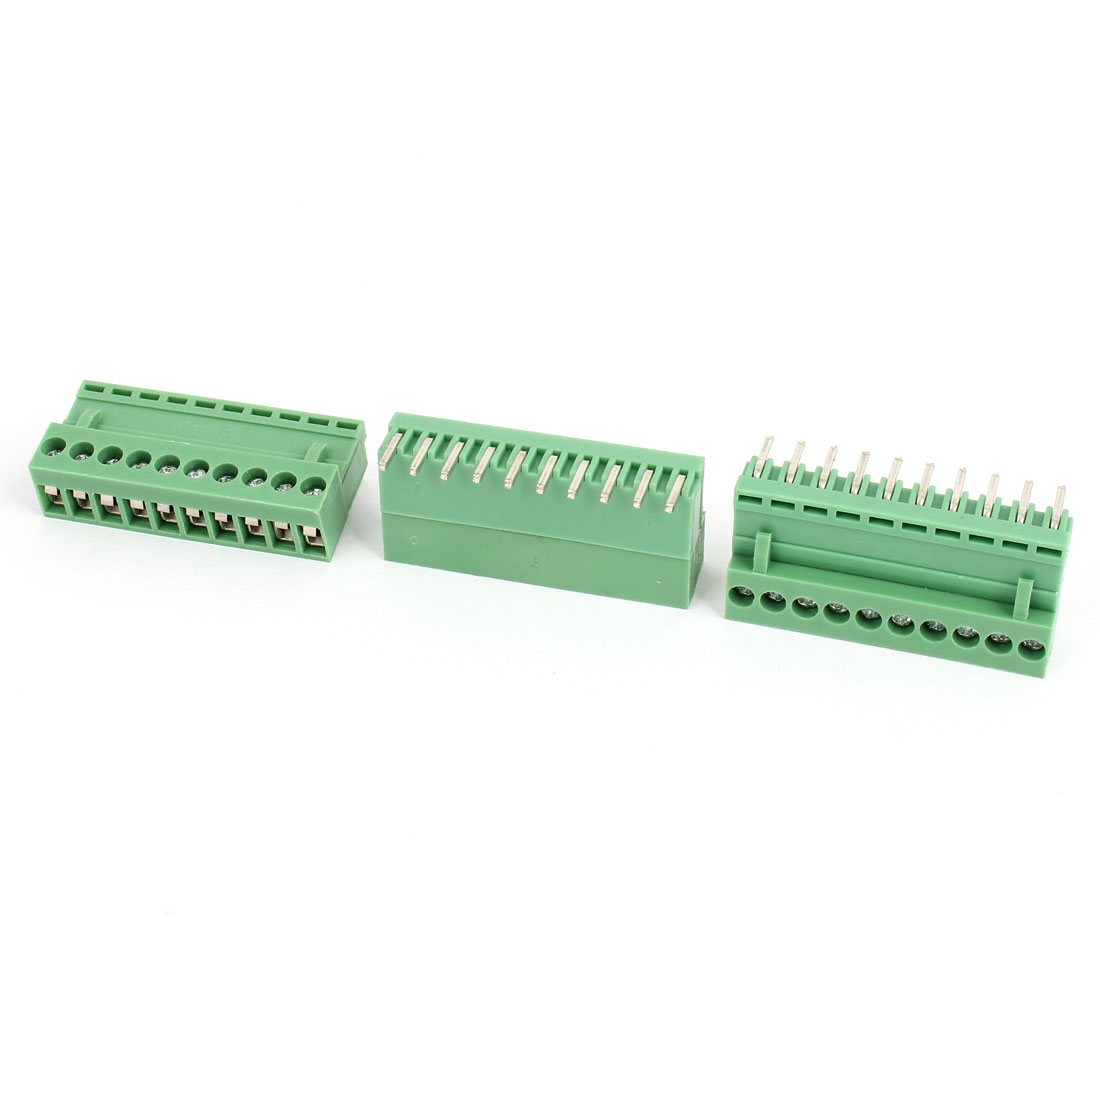 3 Pcs AC 300V 10A 10P Pins PCB Screw Terminal Block Connector 3.96mm Pitch Green